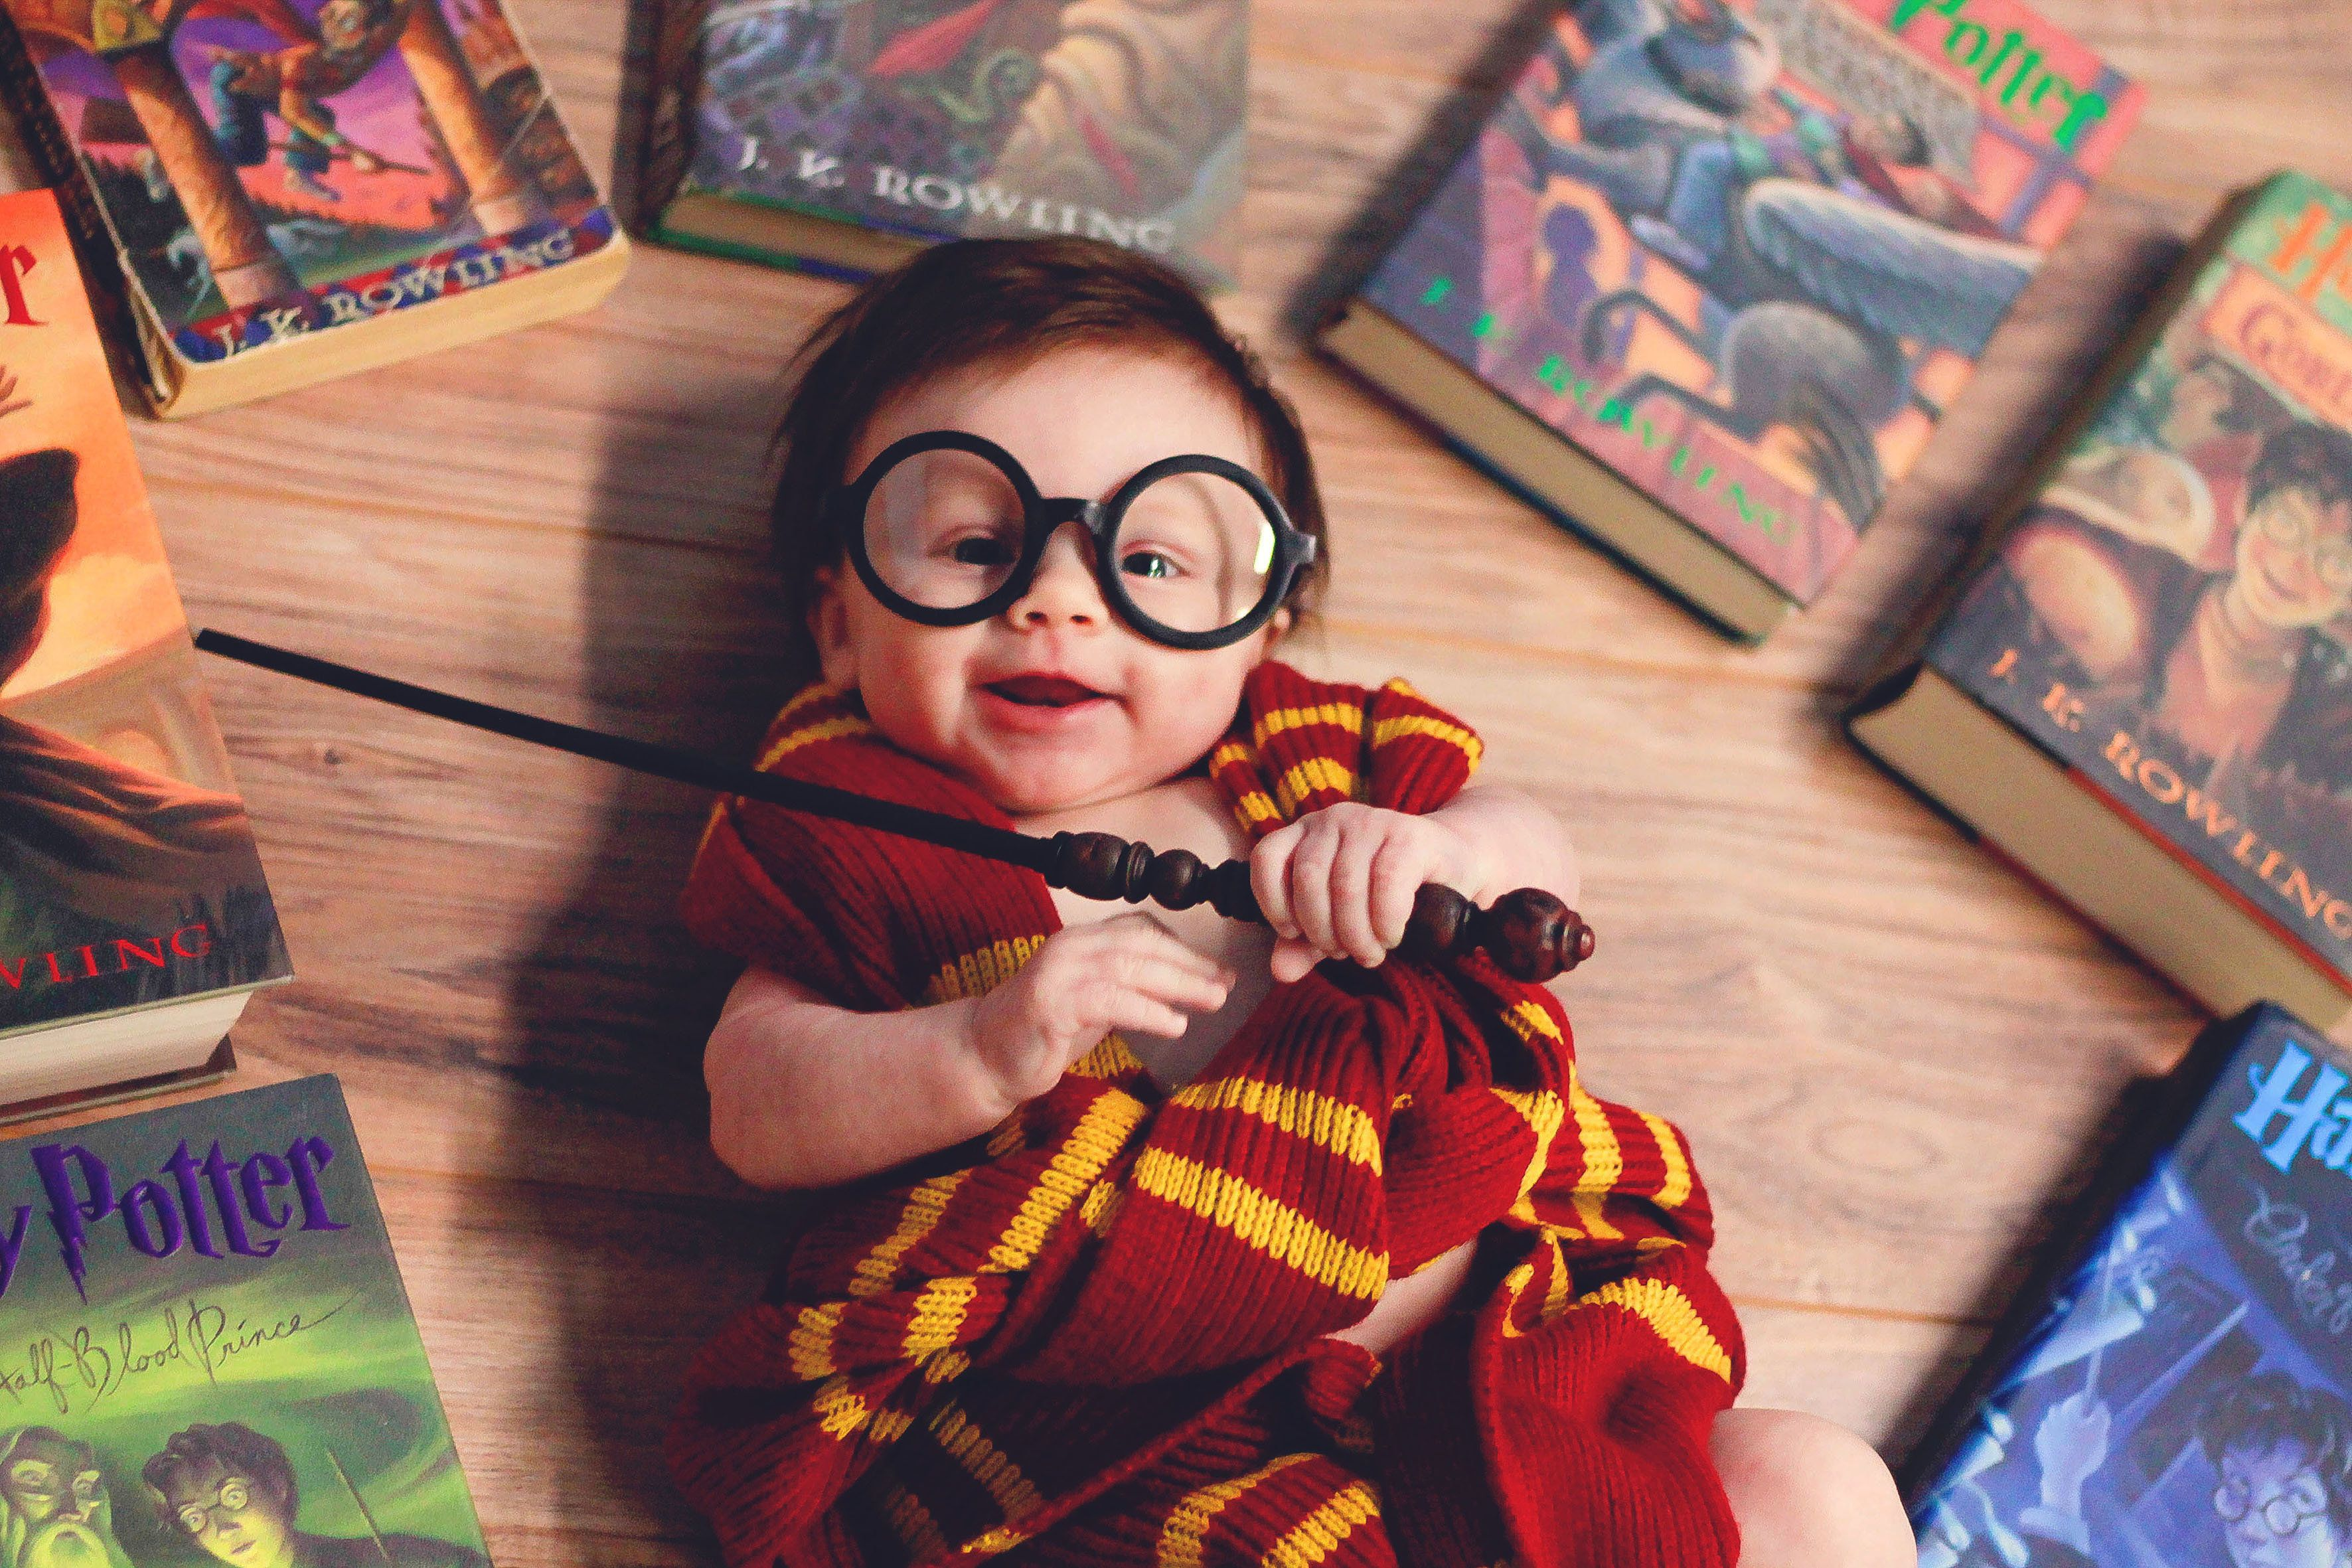 *** EXCLUSIVE ***  CHICAGO, IL - 2016: A four-month-old baby girl, Lorelai Grace is dressed as a baby Harry Potter during a photo shoot in Chicago, Illinois.  A DIE hard Harry Potter fan has created a magical photoshoot using her baby daughter. Photographer Kayla Glover, aged 29, of Illinois, put her vision of all things Harry Potter to the test after the birth of her daughter Lorelai Grace. The adorable youngster, who is now four-months-old, can be seen in one of the series of spellbinding photos- placed in a cauldron and wrapped in a Gryffindor scarf while adorned in the well known Harry Potter style glasses, complete with wand and wearing an expression almost as though she had just been told 'You're a wizard Lorelai'!  PHOTOGRAPH BY Fortitude Press / Barcroft Images  London-T:+44 207 033 1031 E:hello@barcroftmedia.com - New York-T:+1 212 796 2458 E:hello@barcroftusa.com - New Delhi-T:+91 11 4053 2429 E:hello@barcroftindia.com www.barcroftimages.com (Photo credit should read Fortitude Press /Barcroft Images / Barcroft Media via Getty Images)